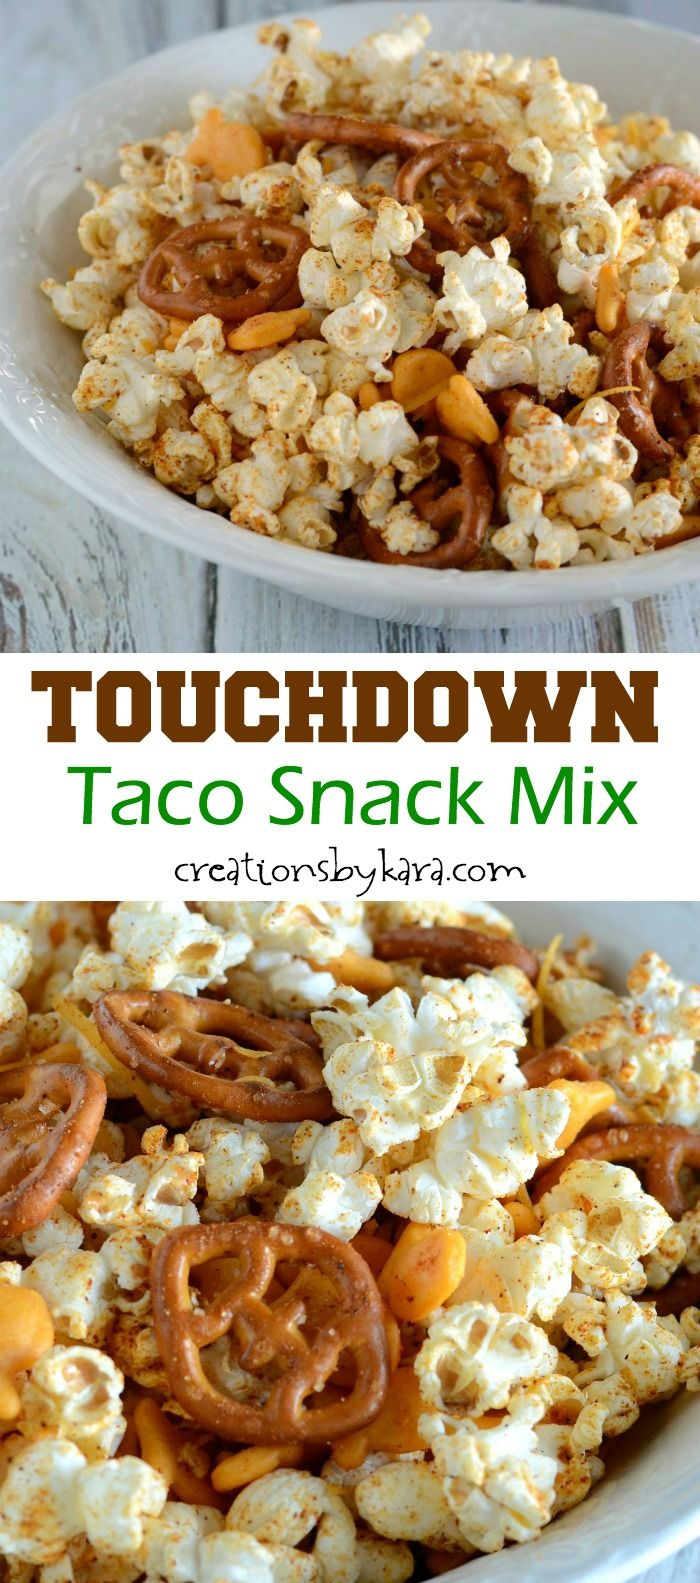 Recipe for Taco Snack Mix with popcorn. Perfect for game day!